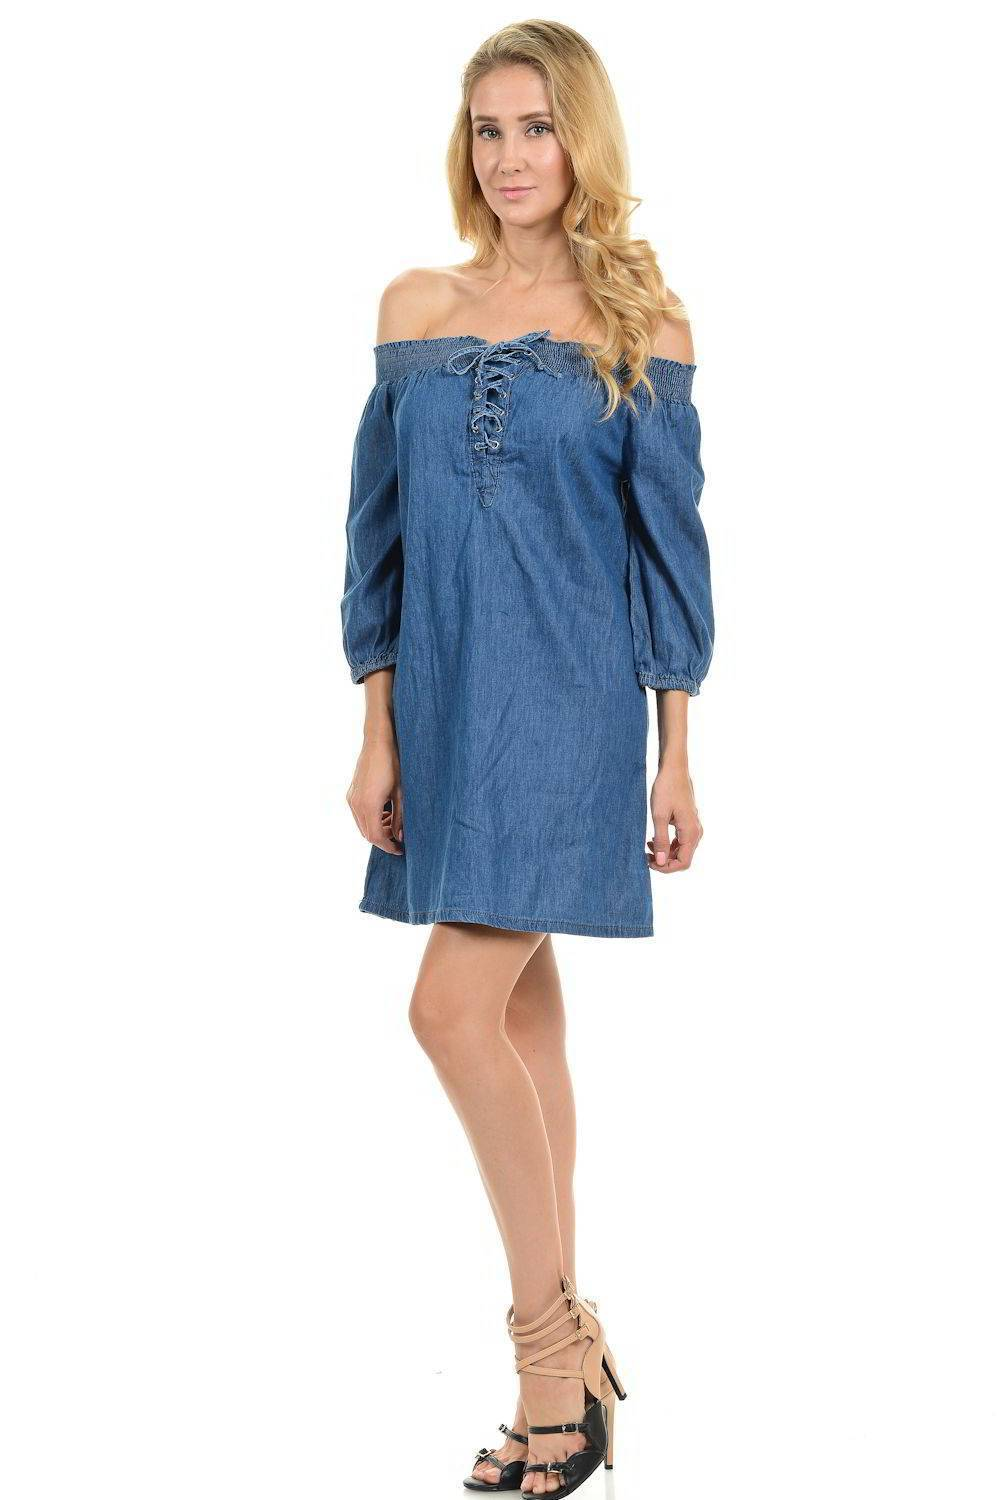 Sweet Look Denim Dresses